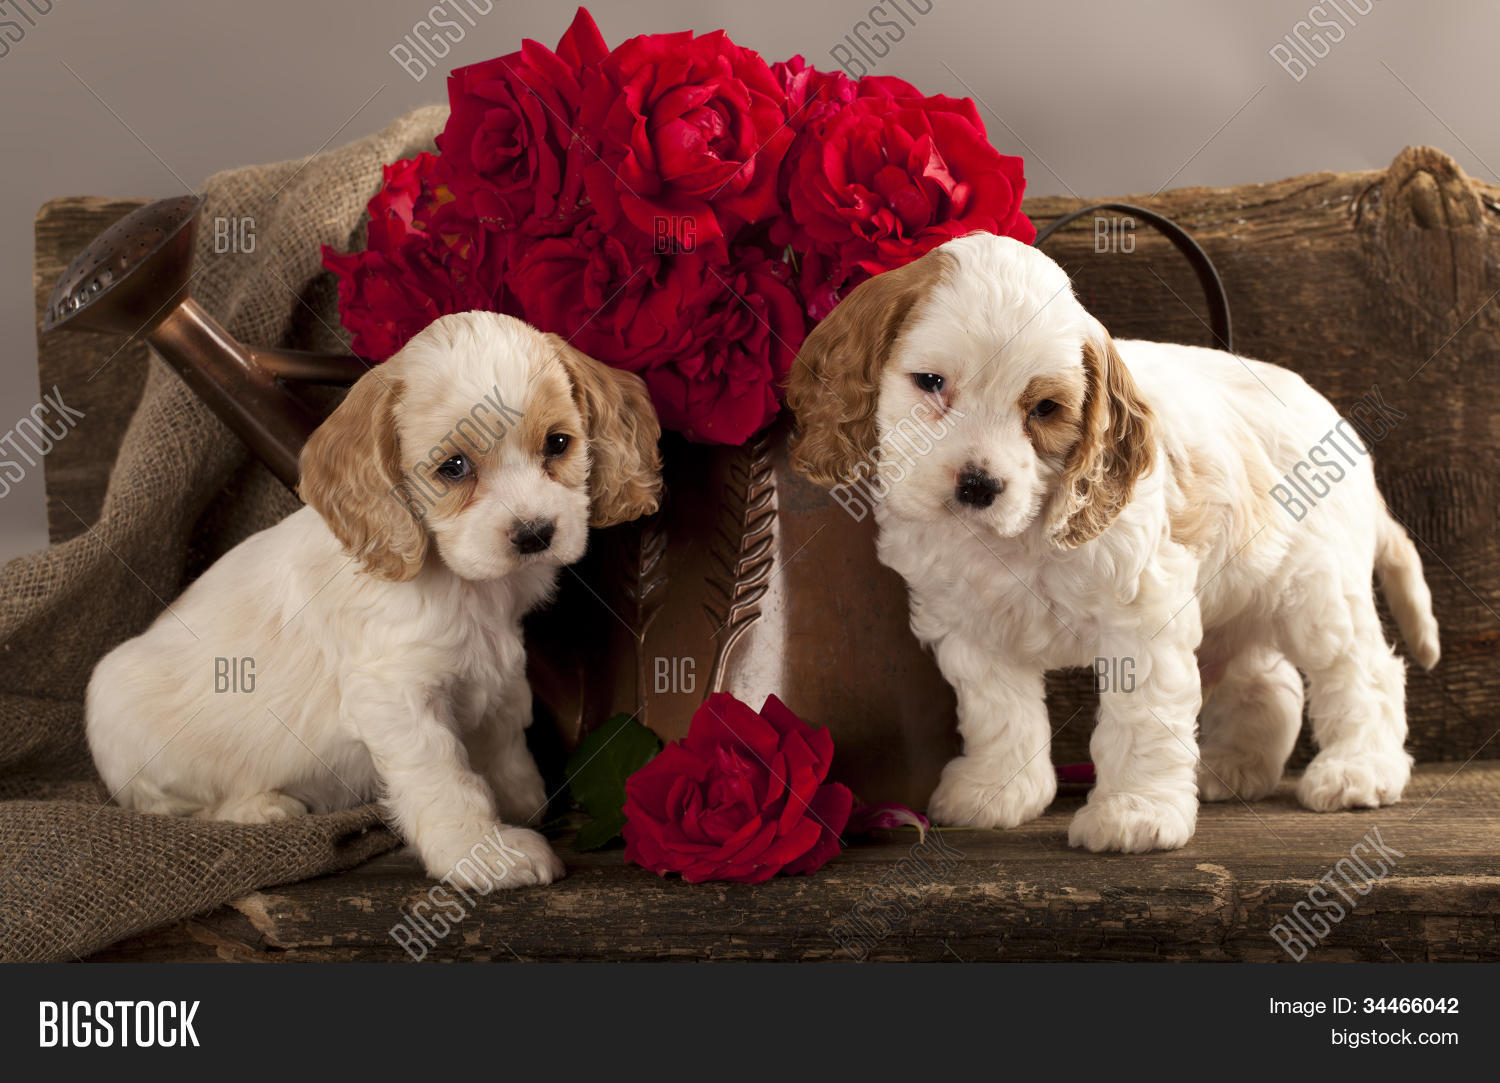 Cocker Spaniel Puppies Image Photo Free Trial Bigstock